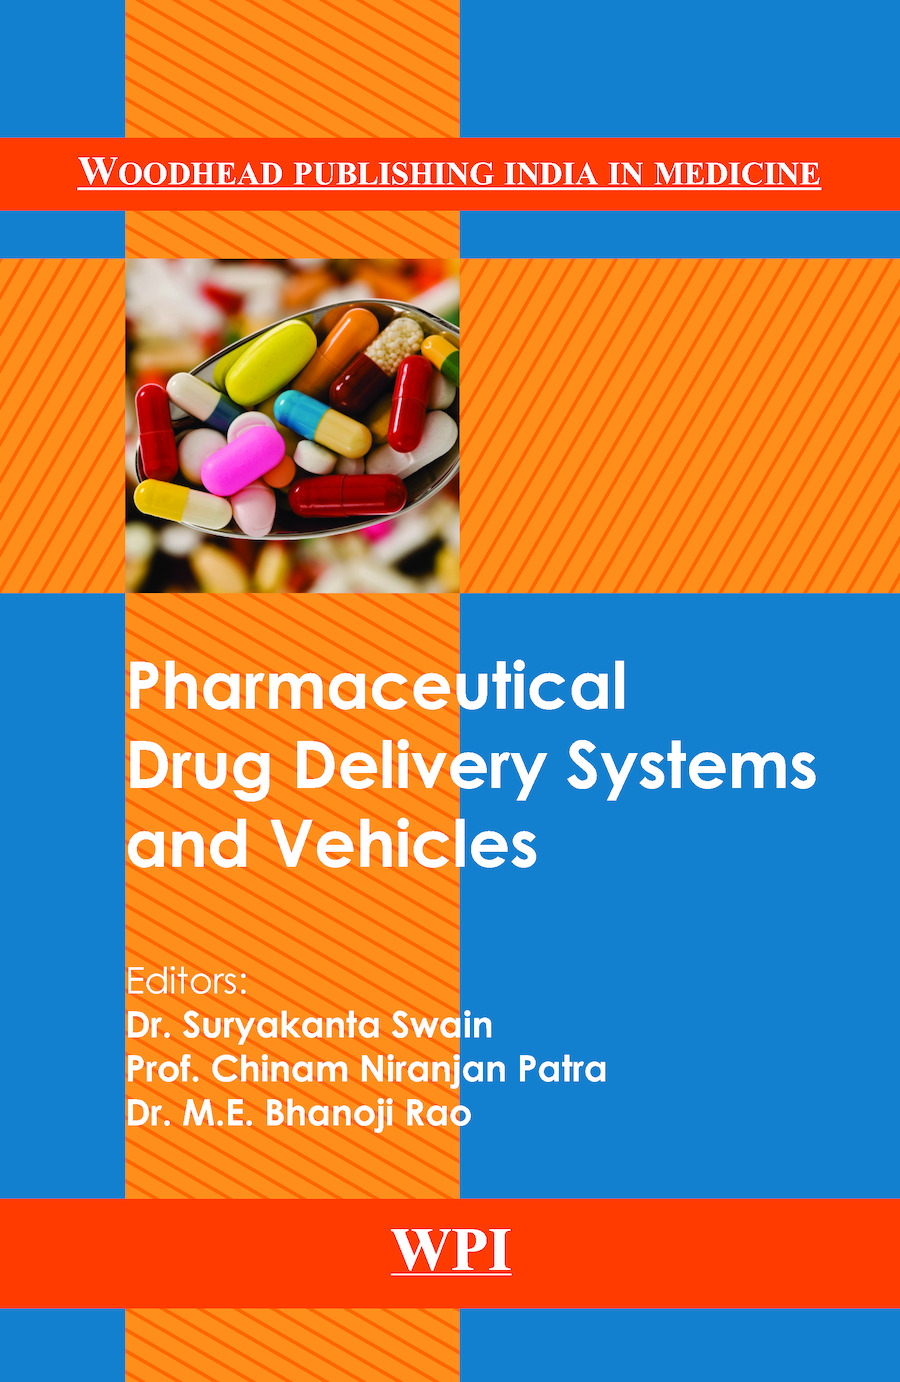 Pharmaceutical Drug Delivery Systems and Vehicles